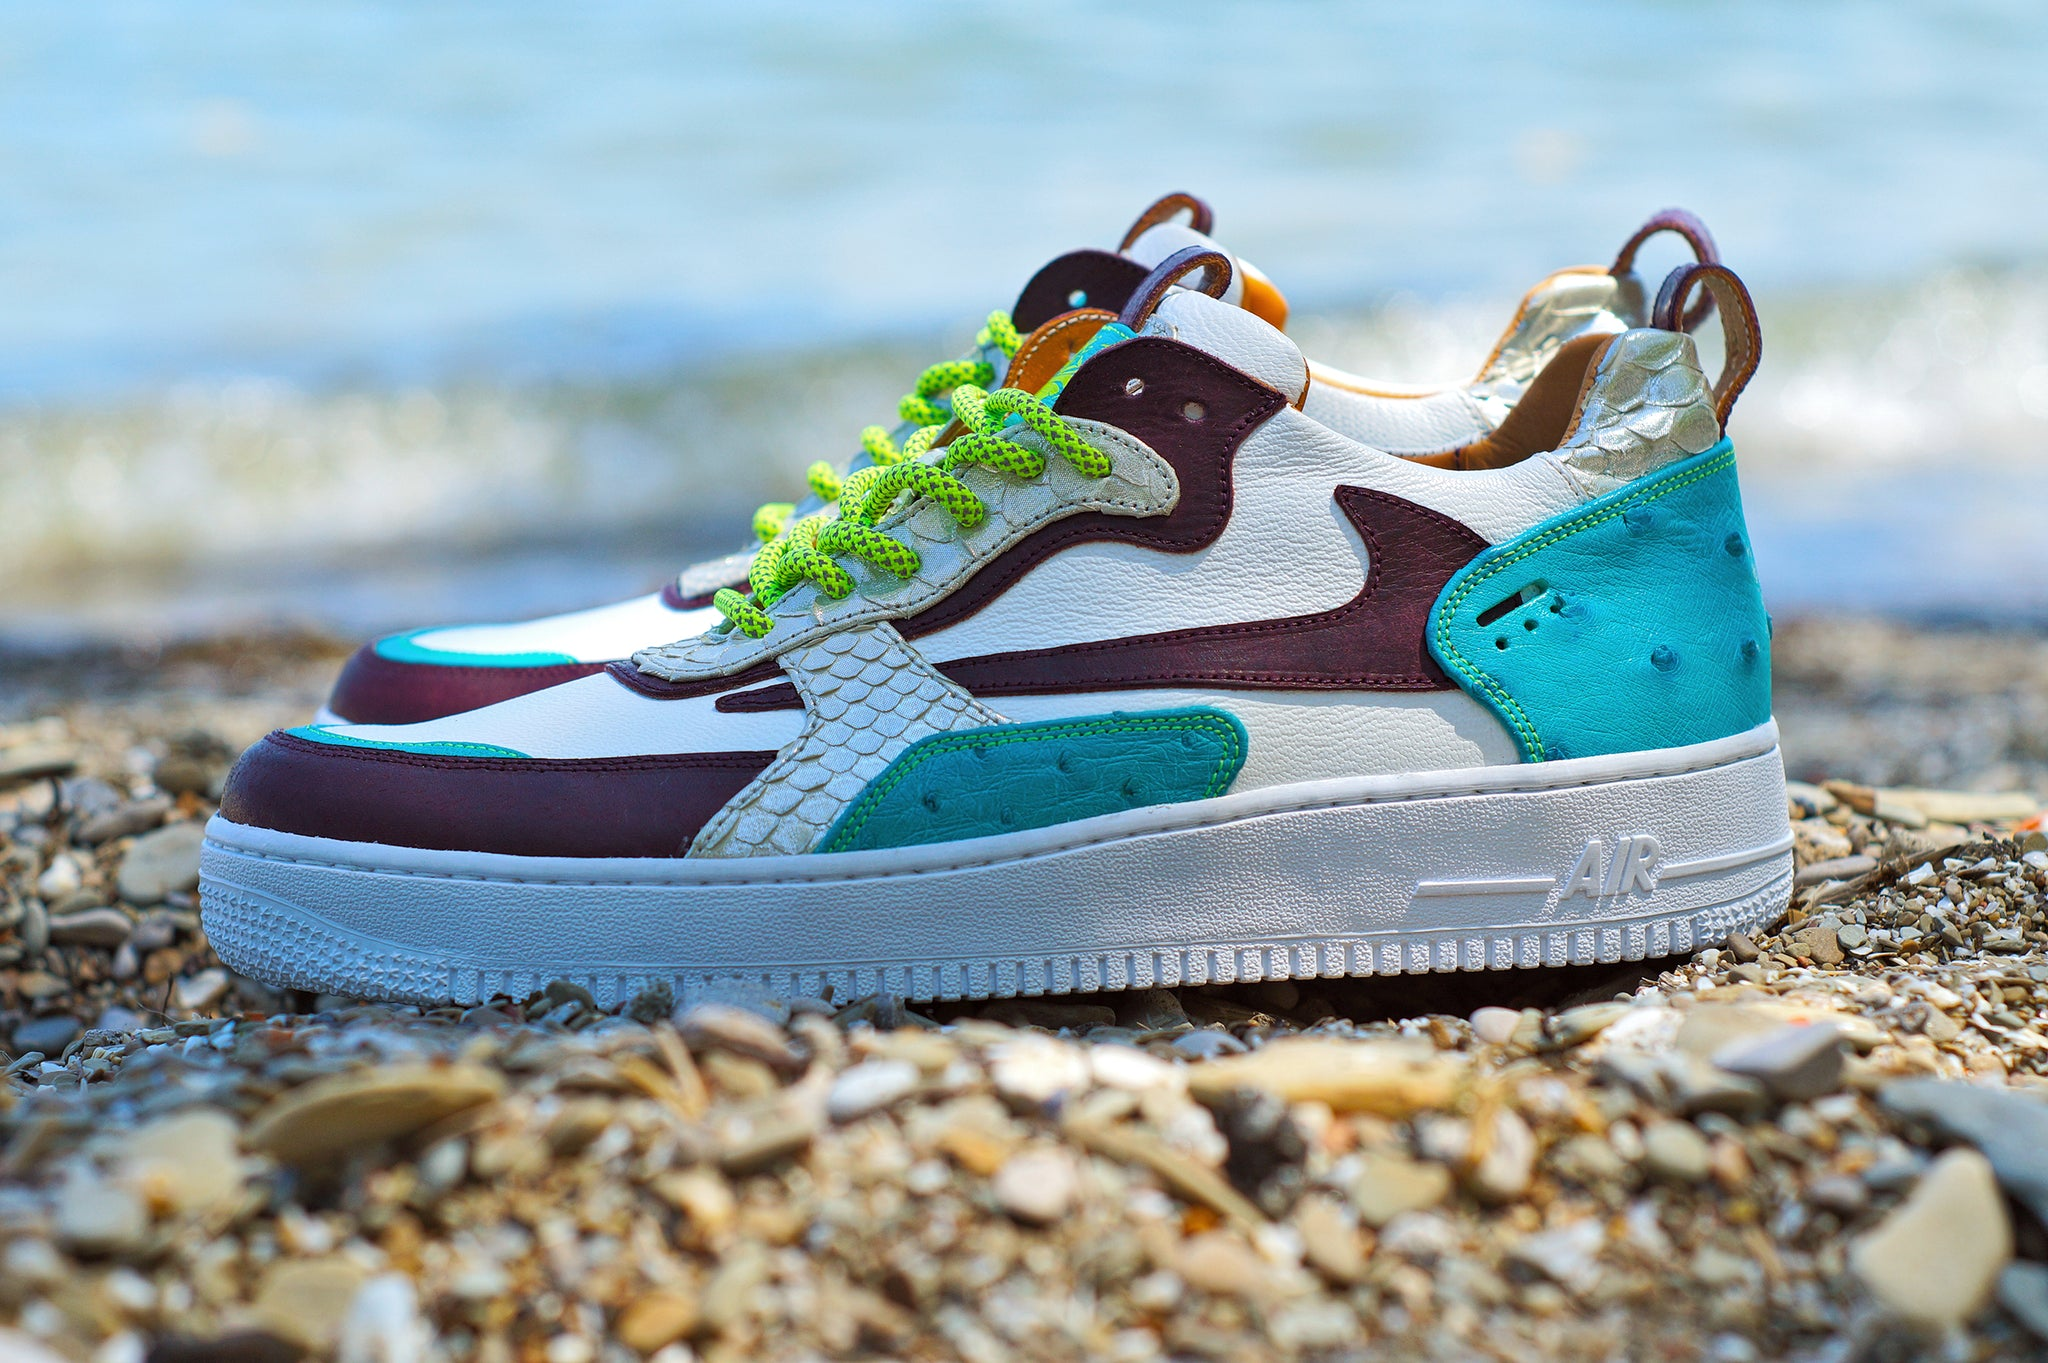 Waverunner Air Force 1 by JBF customs and P.Avin